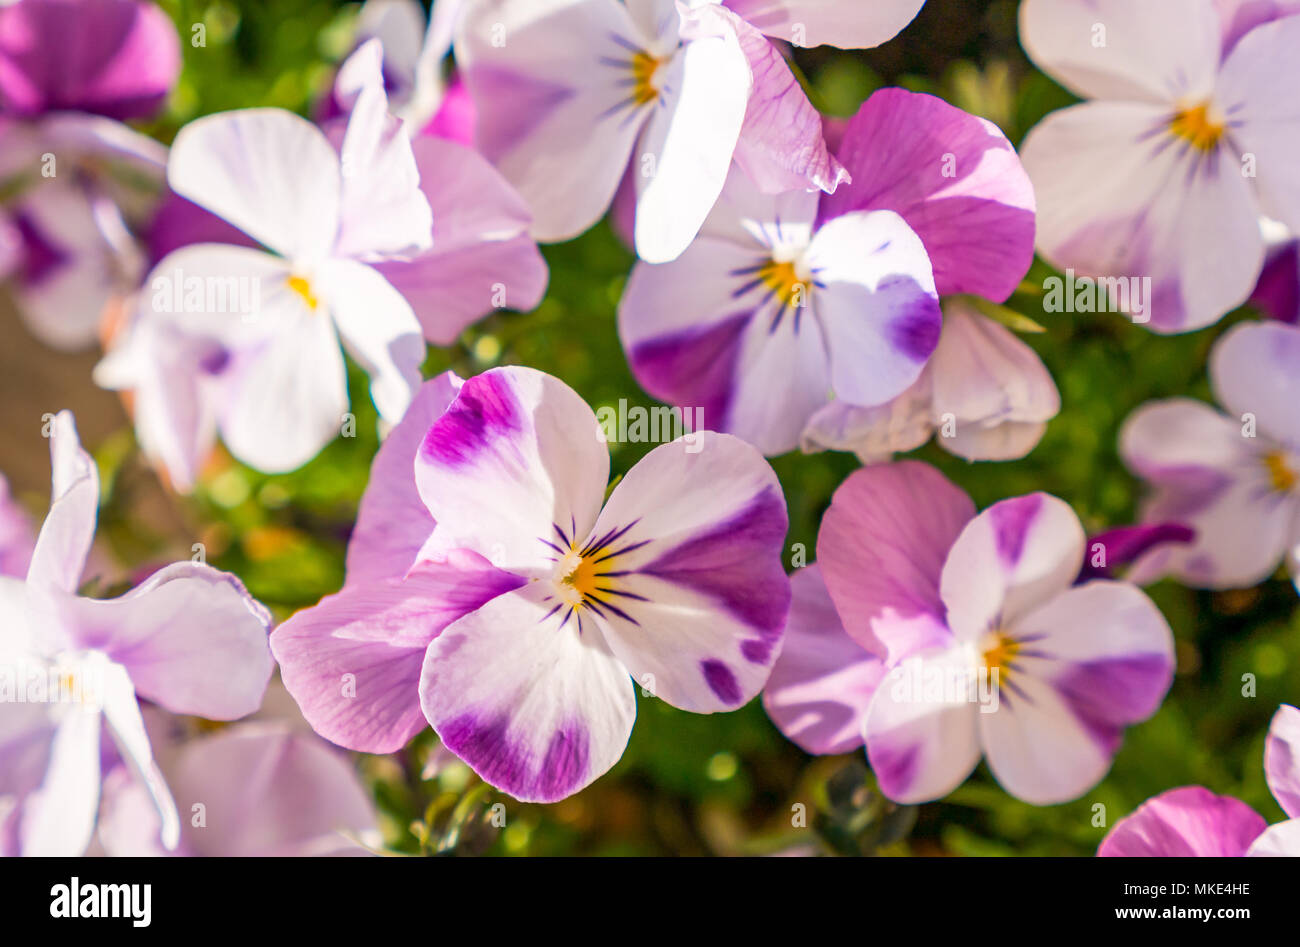 close-up-of-sunlit-pink-white-and-purple